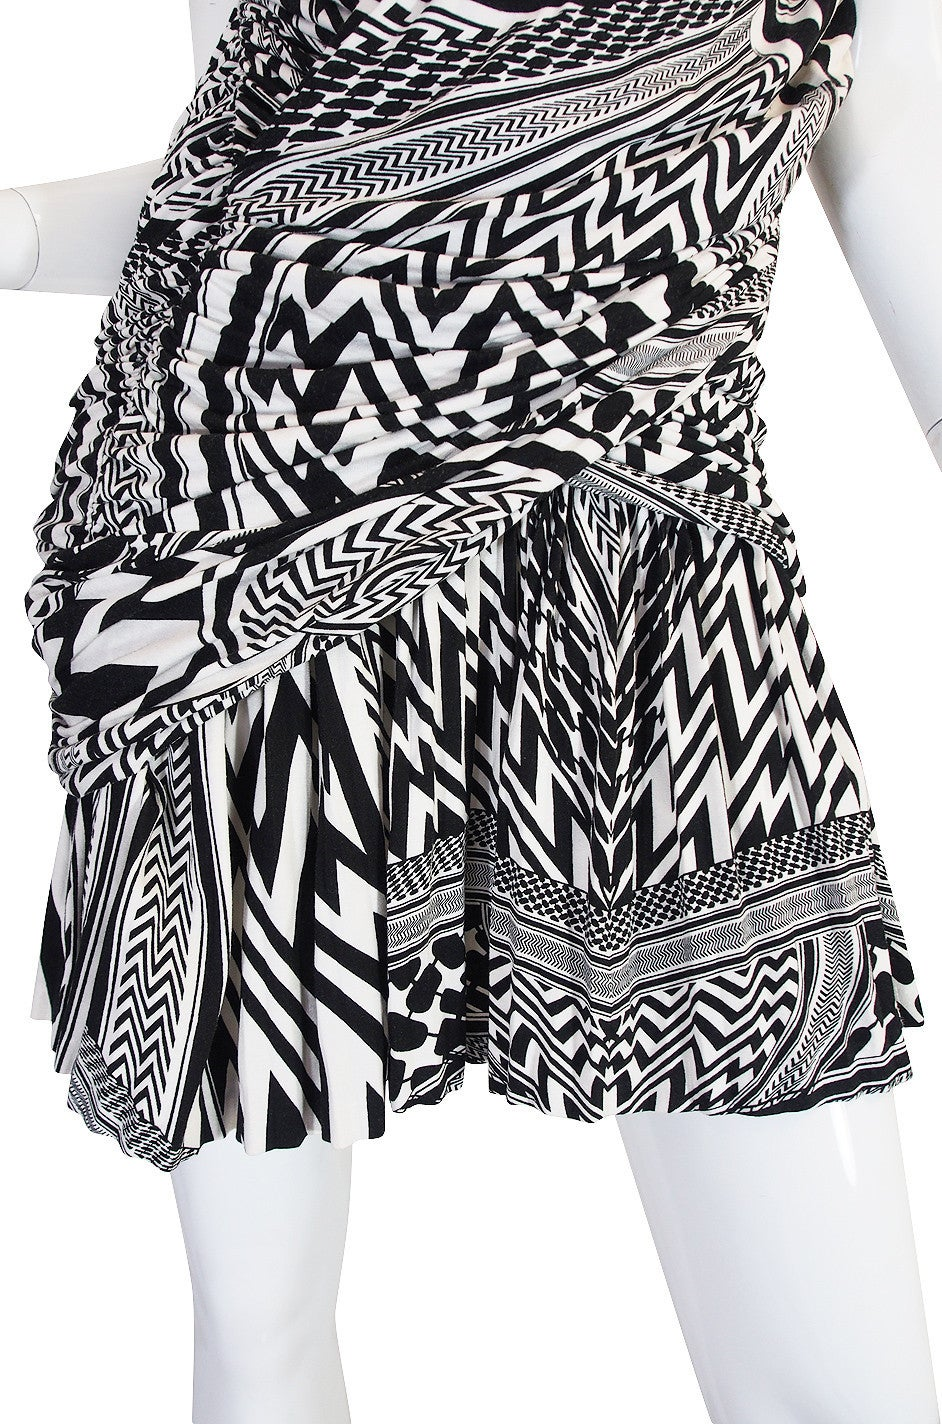 S/S 2010 Givenchy Tribal Print Mini Dress NWT 8